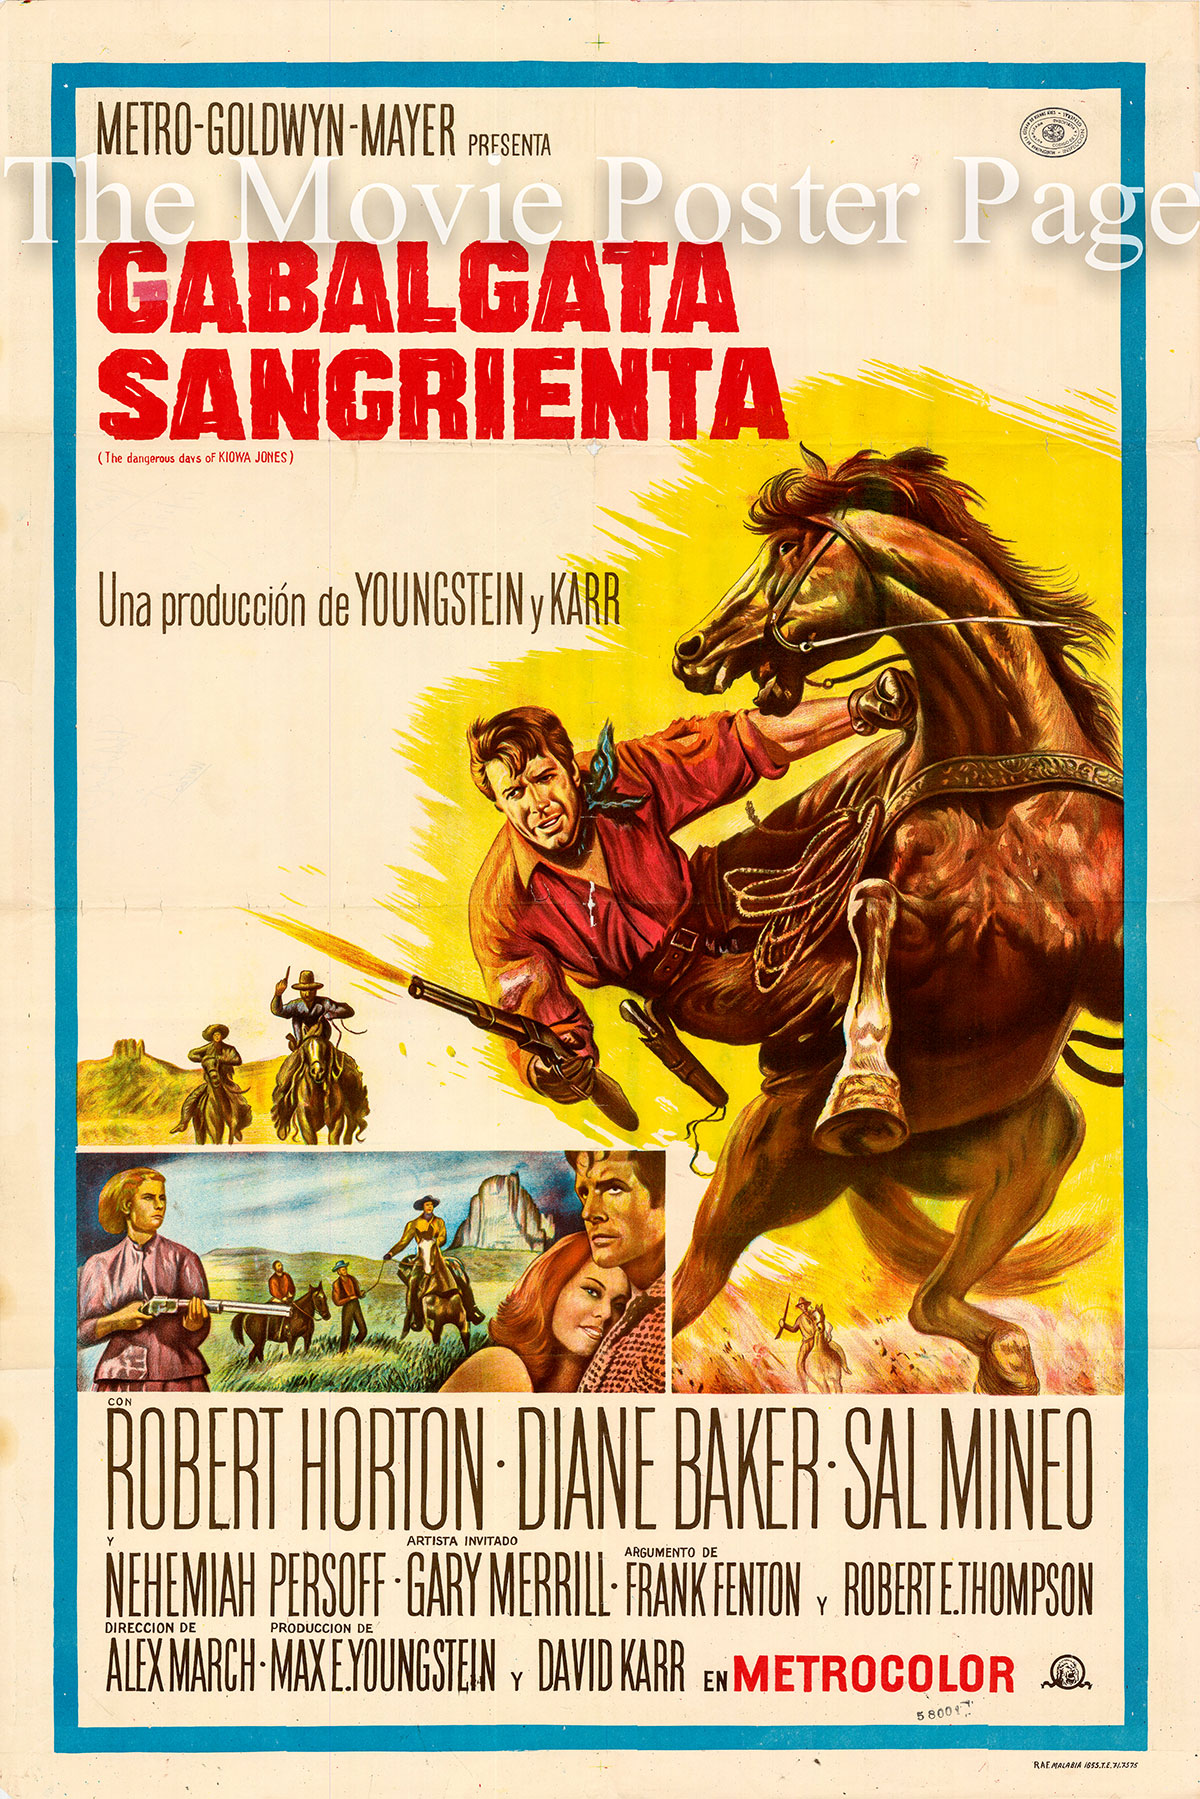 Pictured is an Argentine one-sheet poster for the 1966 Alex March film The Dangerous Days of Kiowa Jones starring Robert Horton as Kiowa Jones.